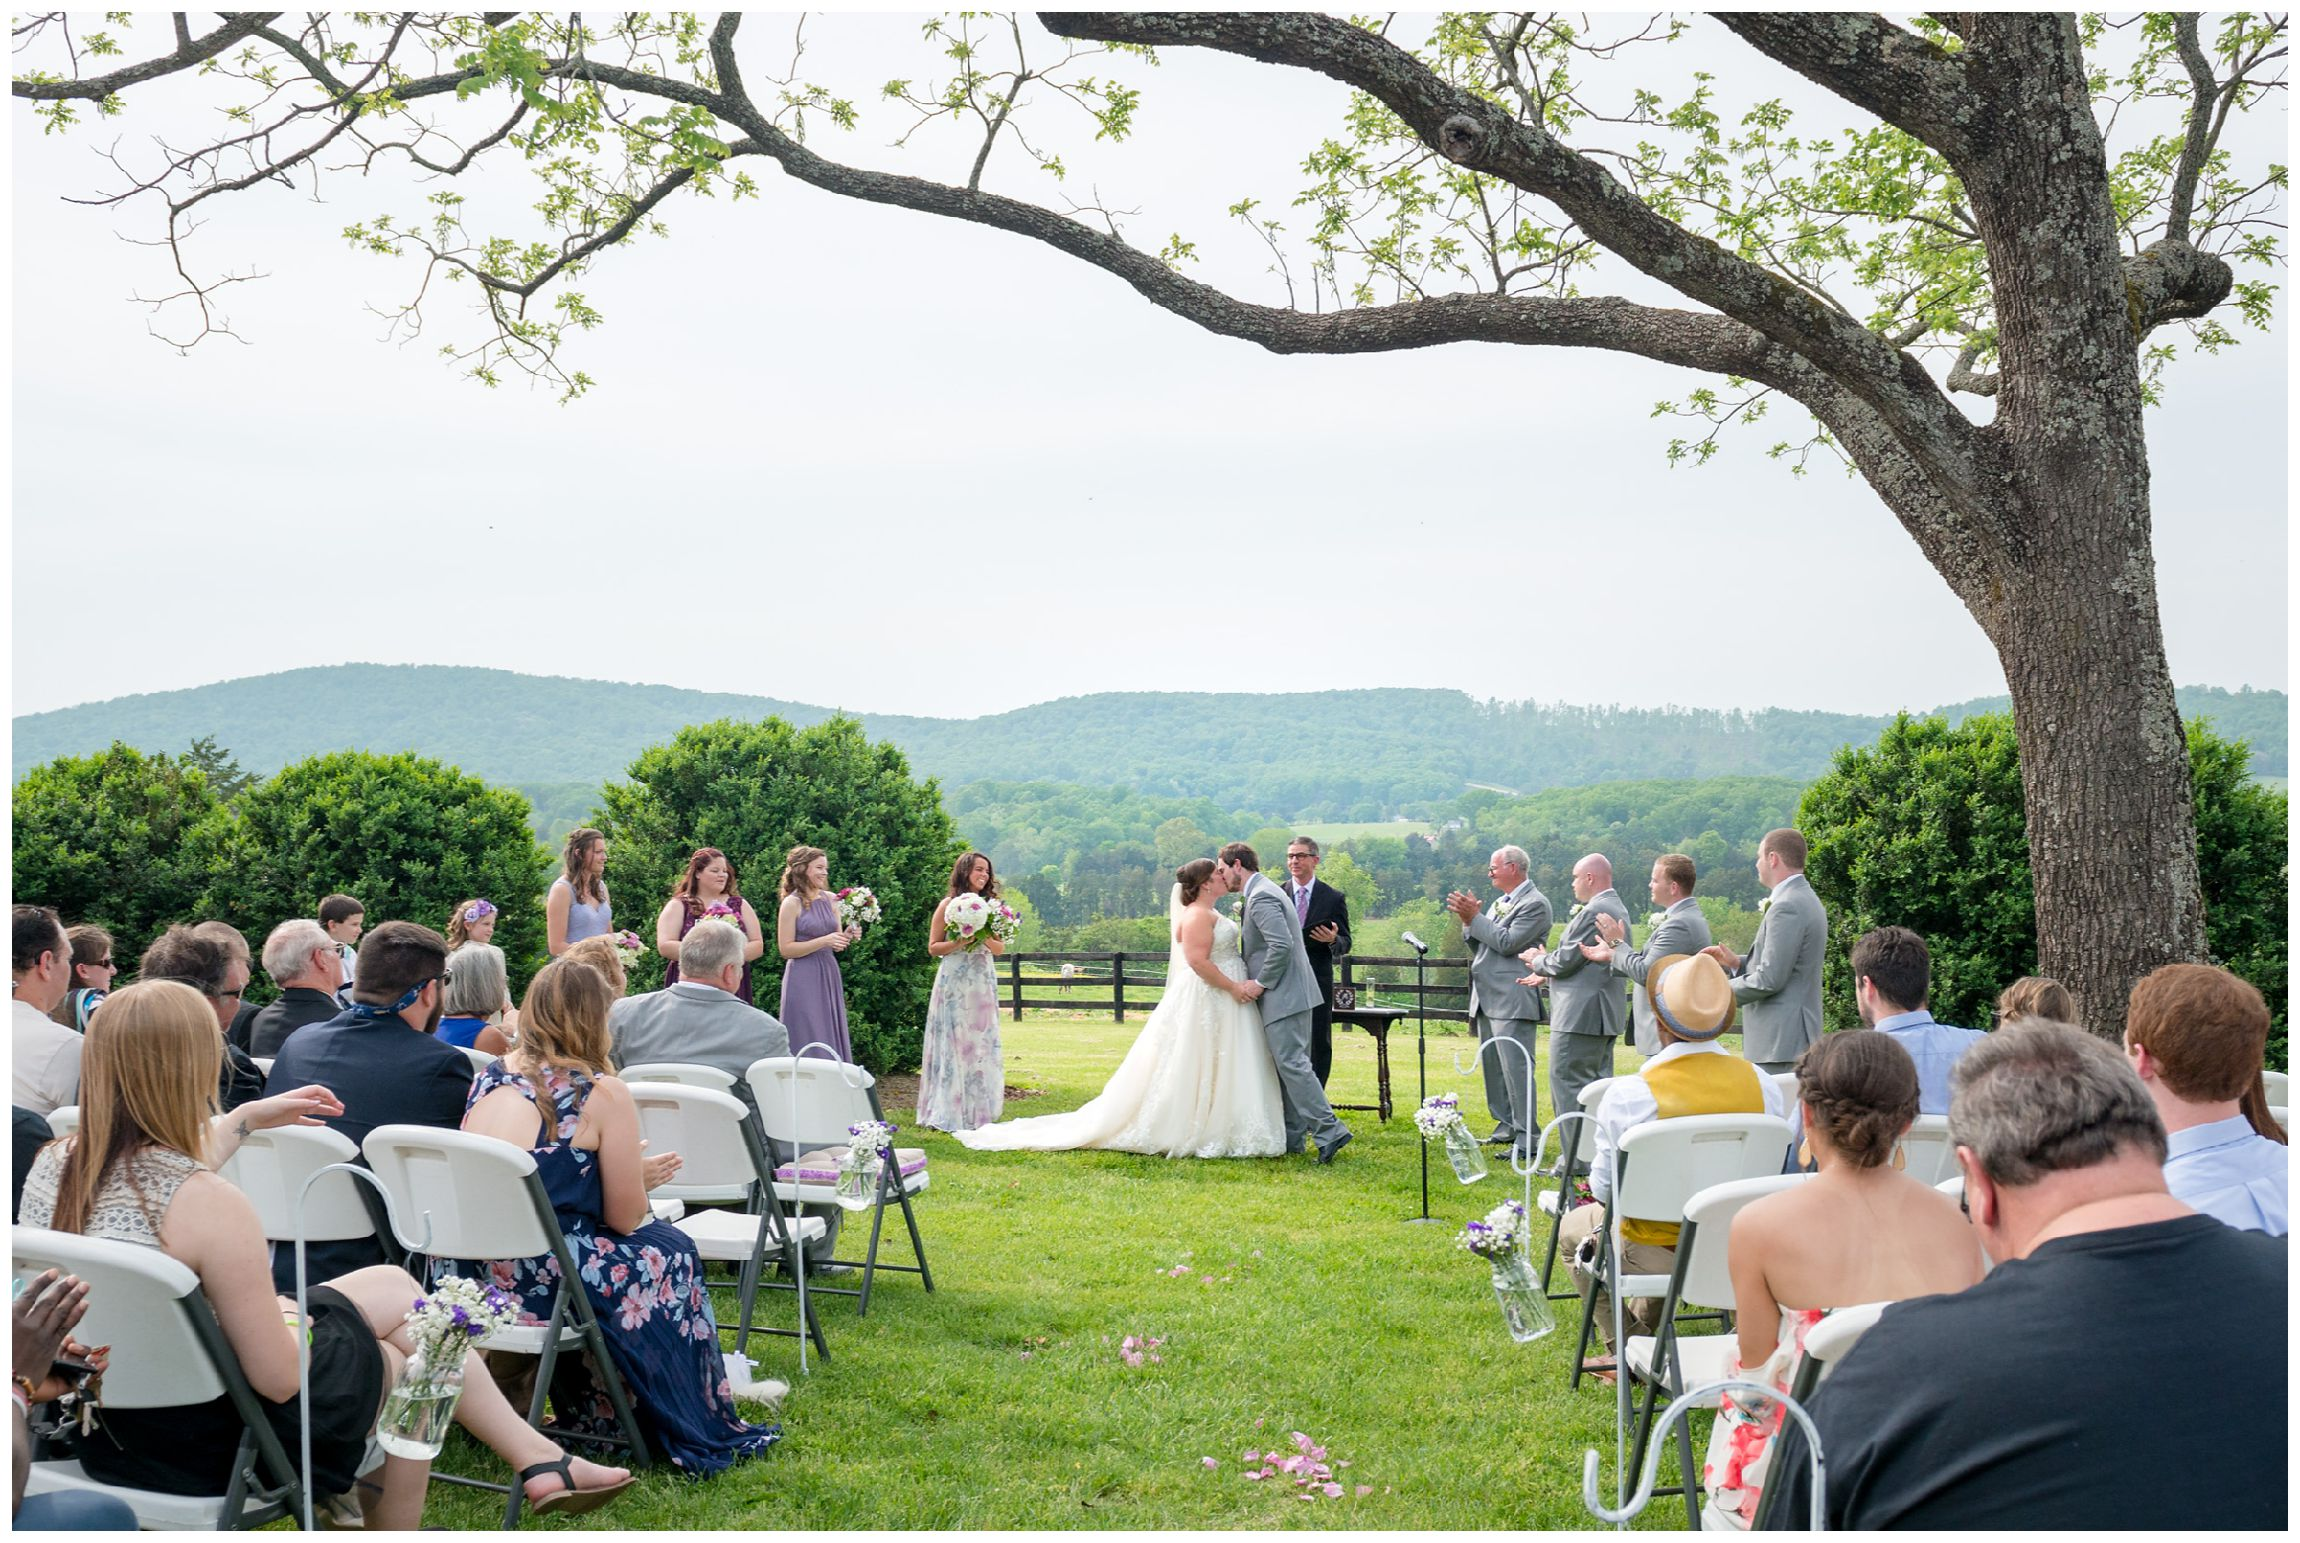 first kiss during rustic spring wedding with mountain views at Wolftrap Farm in Gordonsville, Virginia